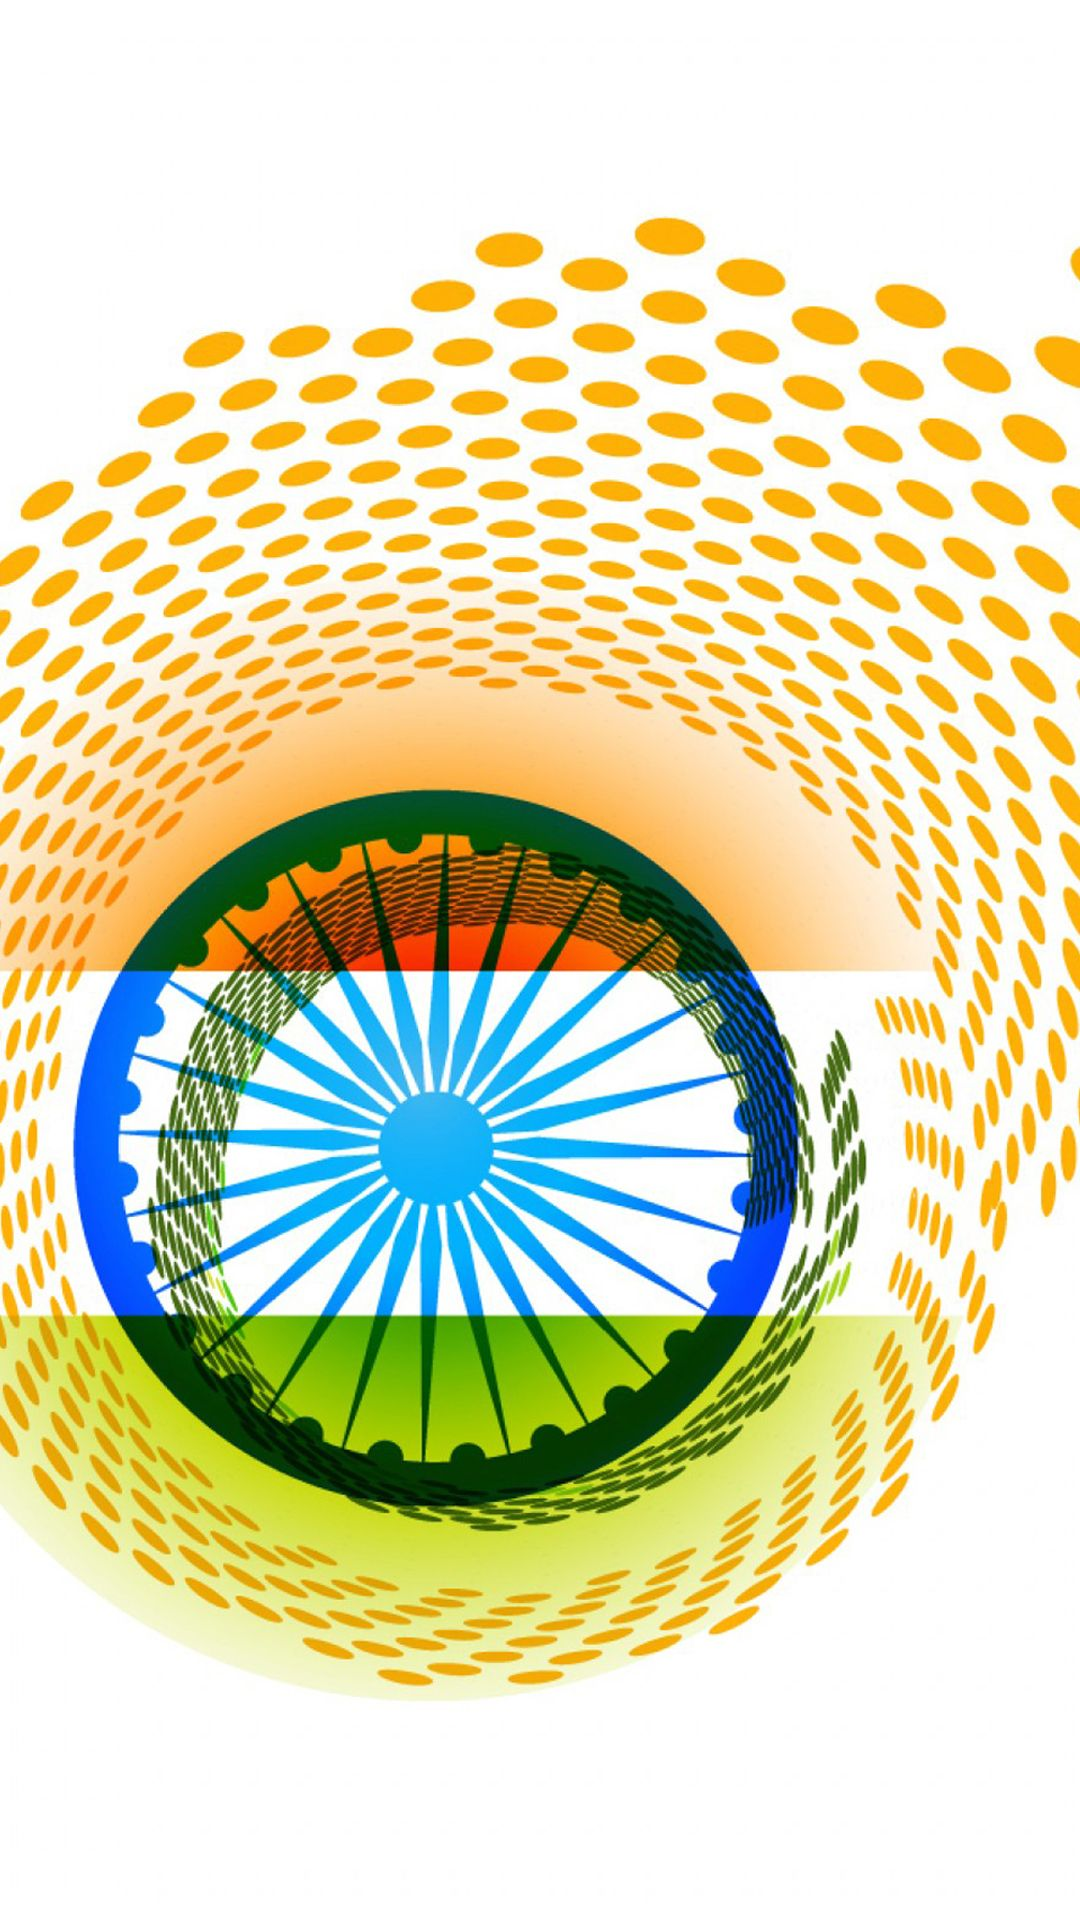 India Flag For Mobile Phone Wallpaper 10 Of 17 Proud To Be An Indian India Flag Indian Flag Wallpaper Indian Flag Images